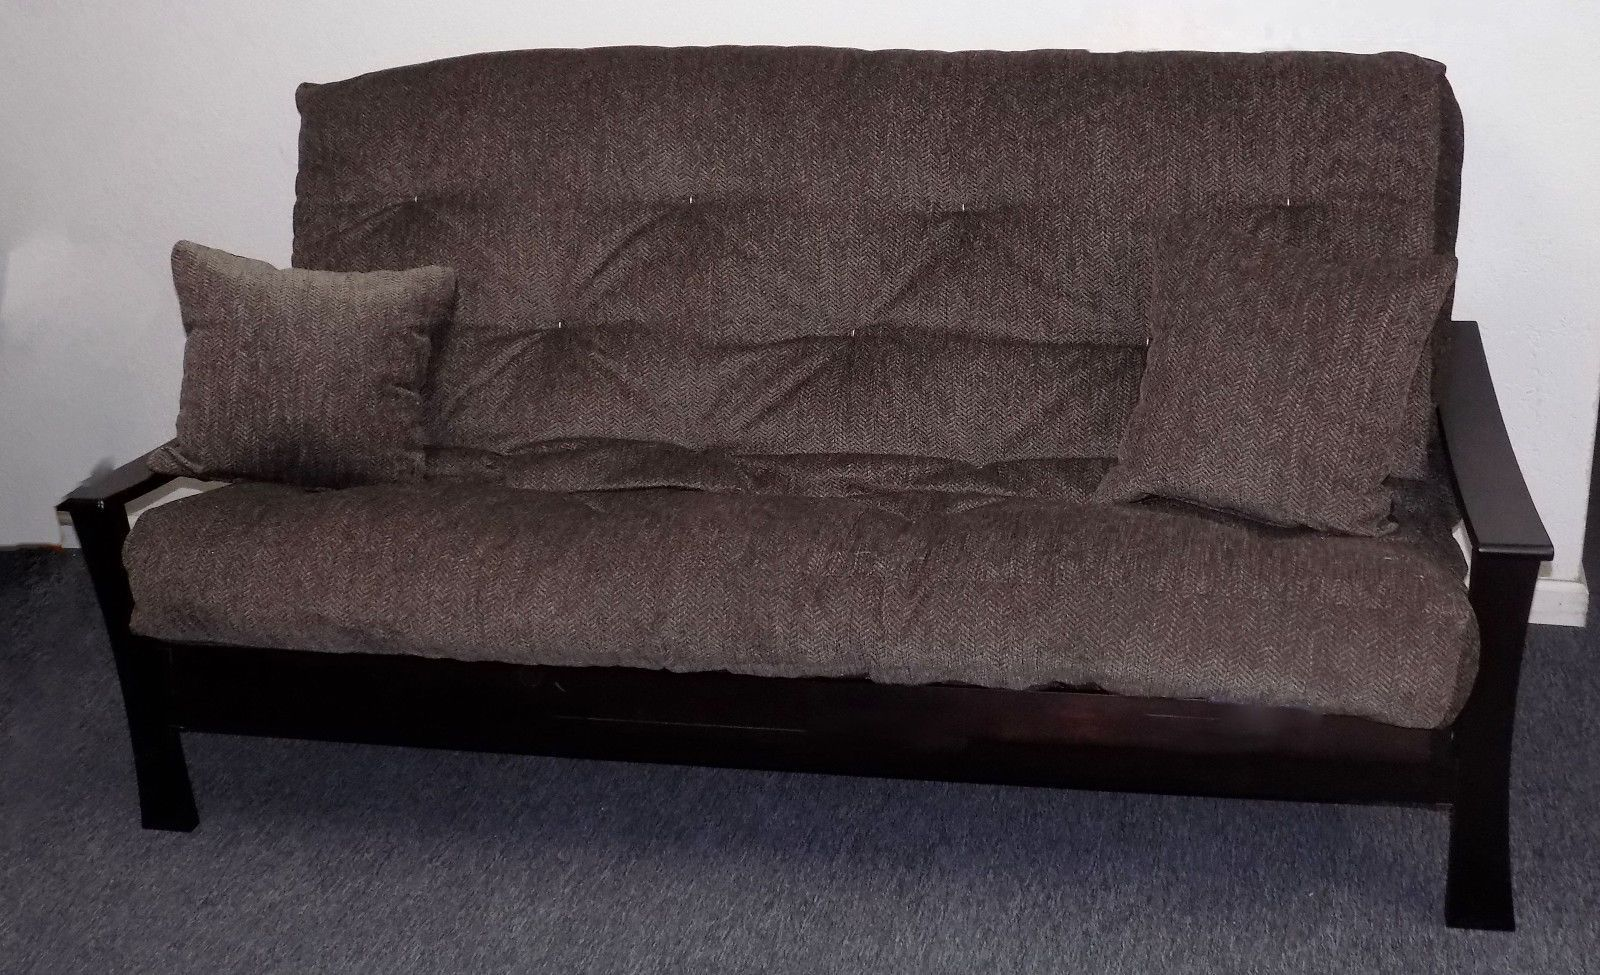 replacement sofa foam manchester karlstad bed hack futon covers roselawnlutheran